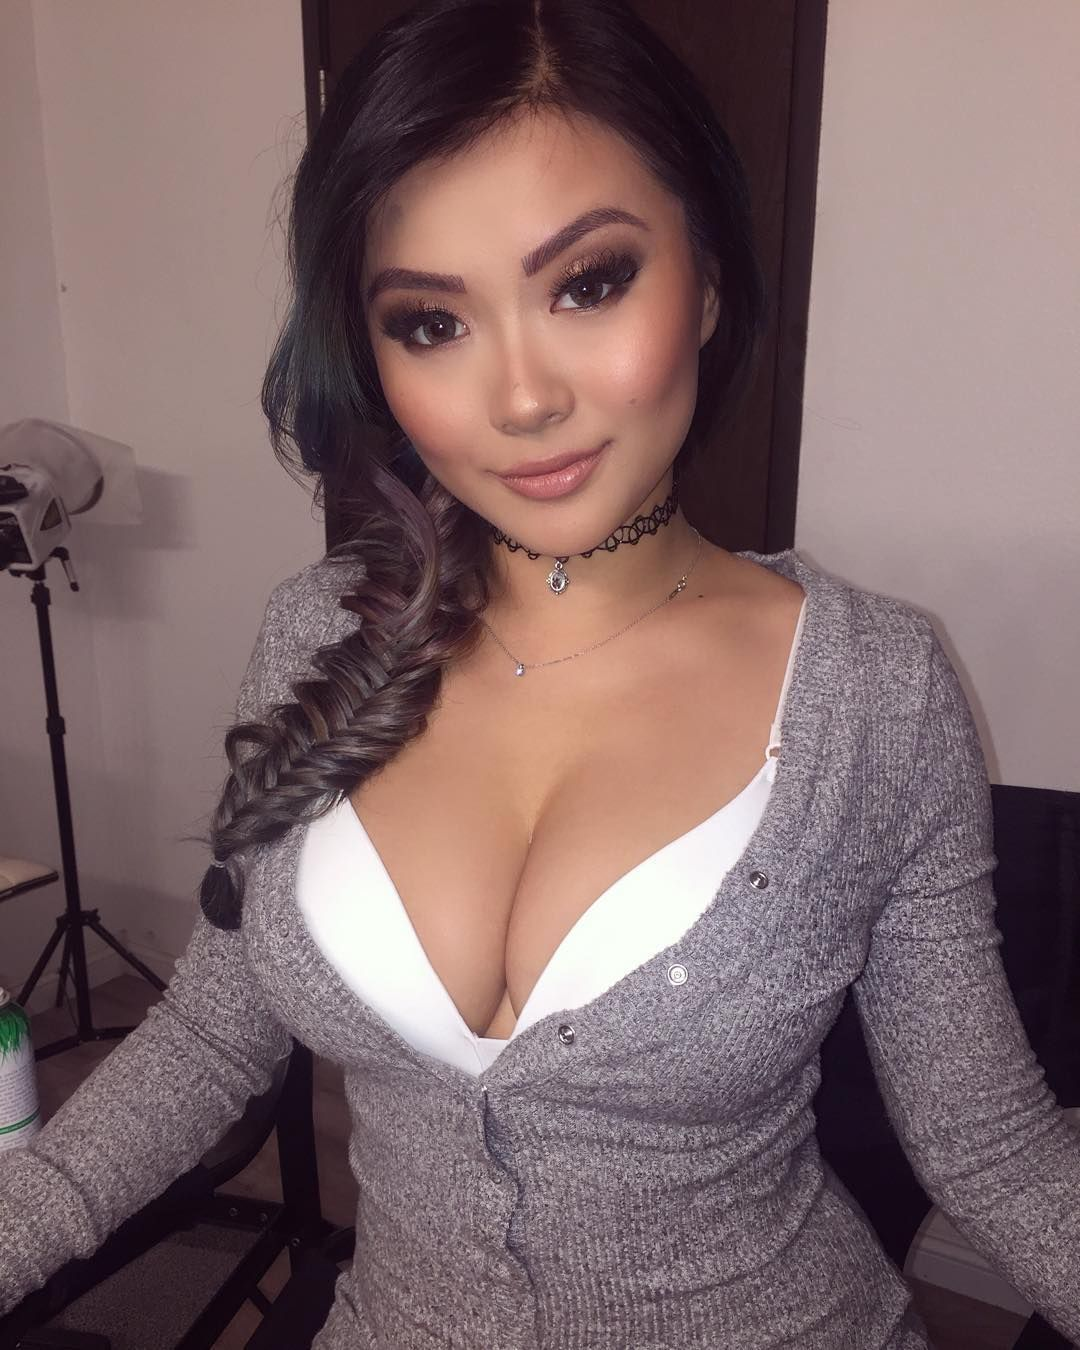 Pics of clevage